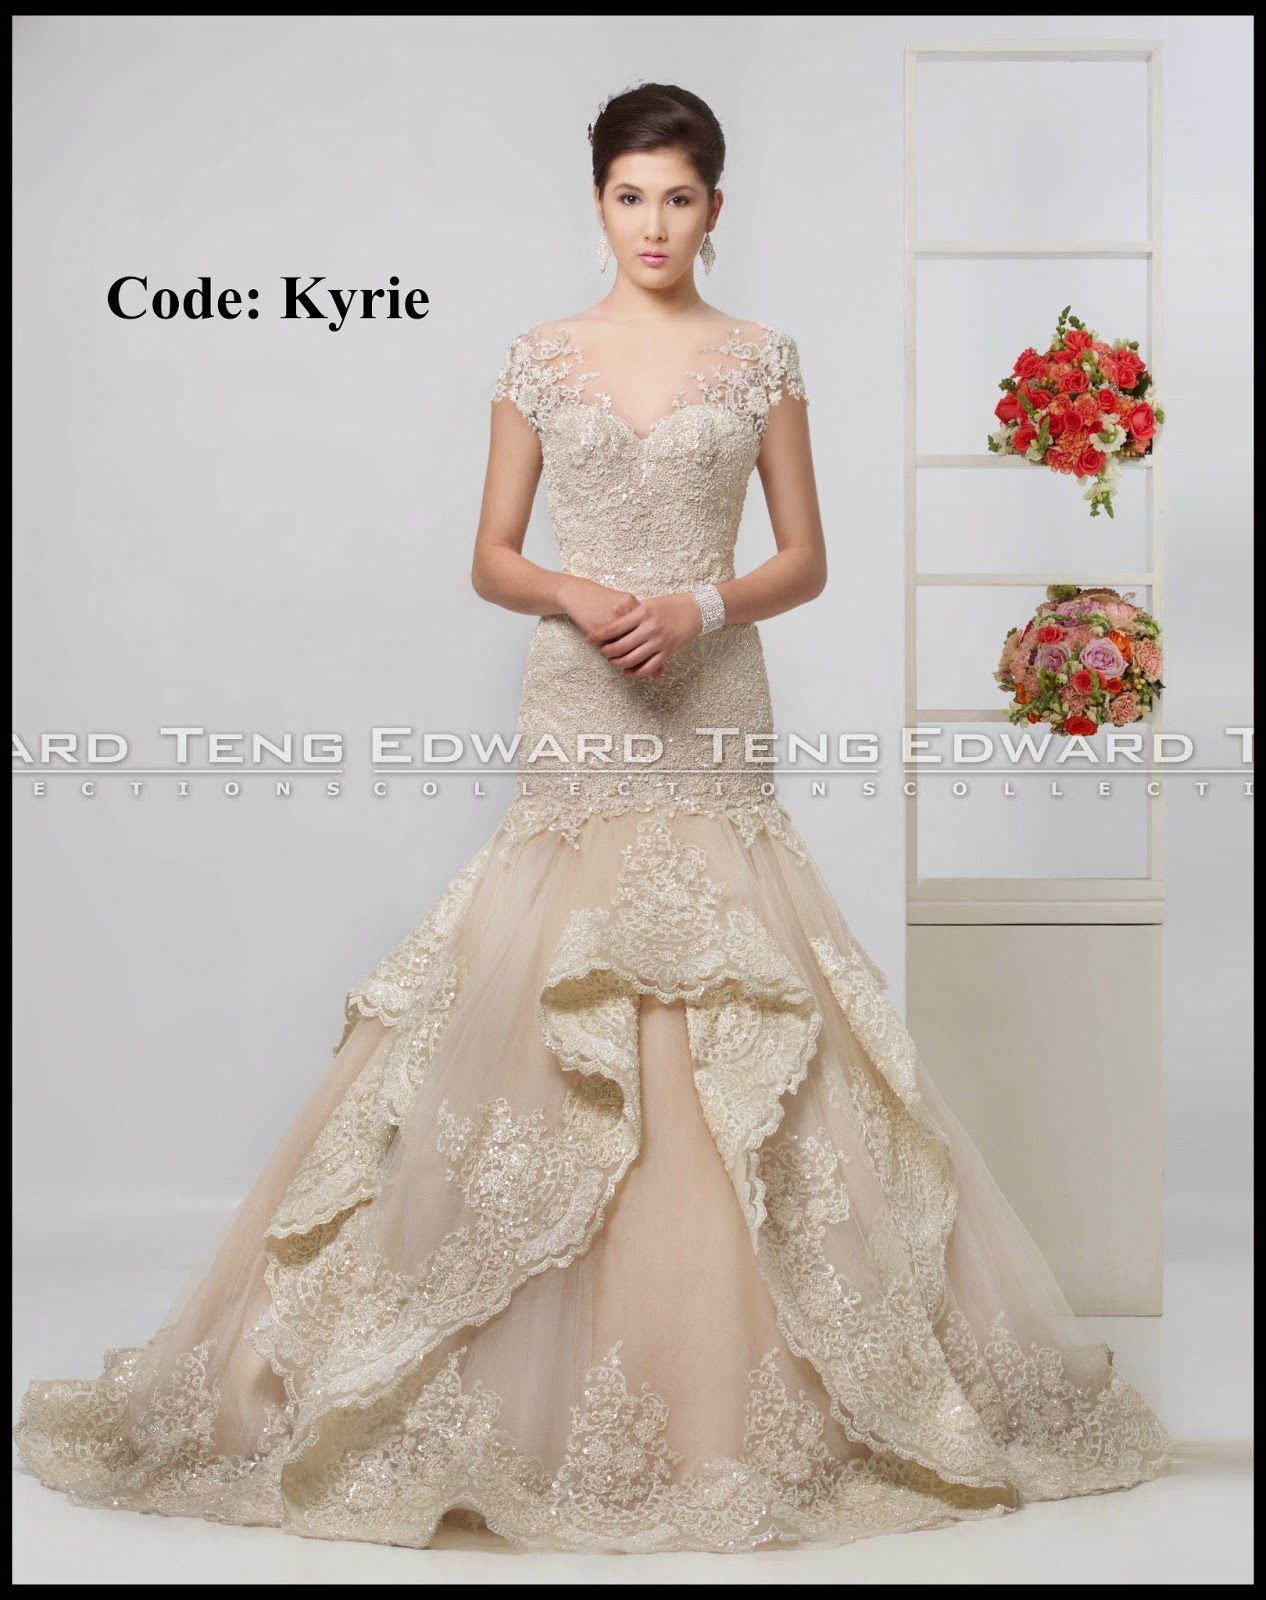 edward teng gown | philippines wedding gown designer | Pinterest ...